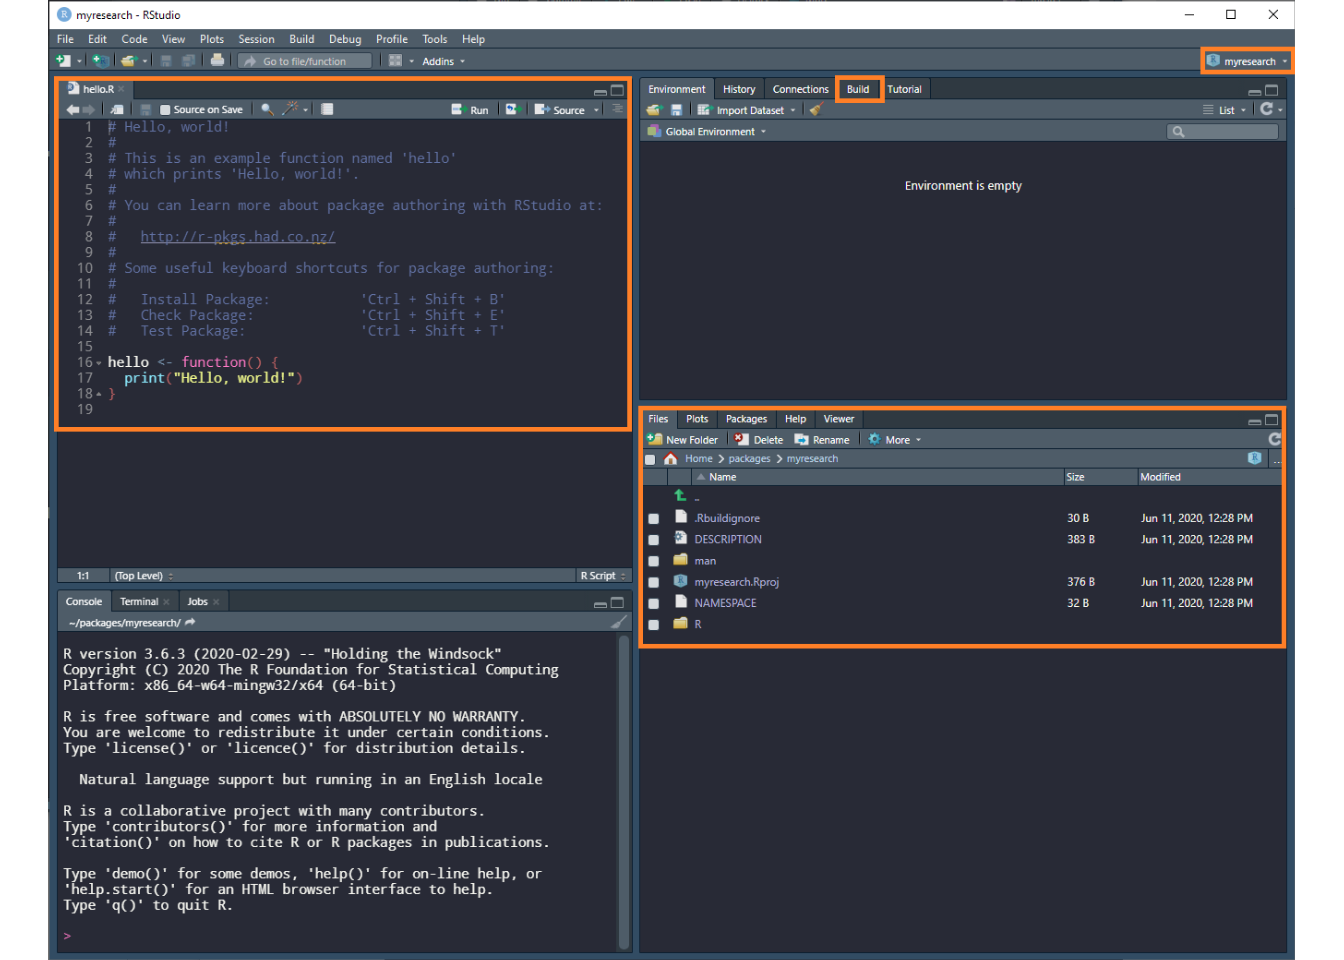 RStudio window layout for newly created package.